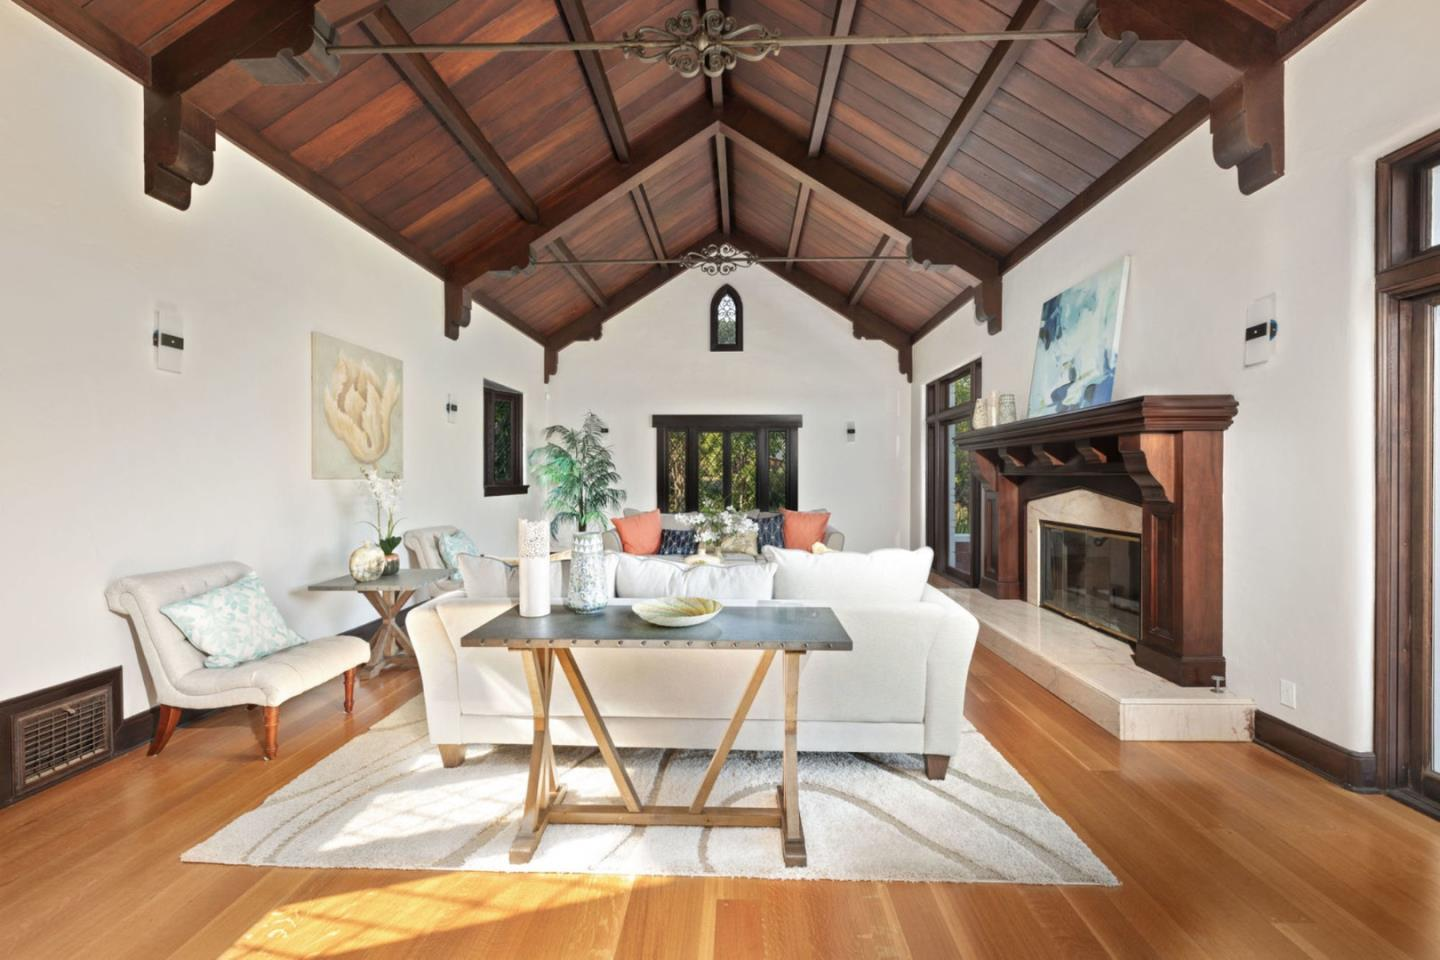 The perfect mix of classic elegance and modern comfort, this executive-style Tudor home, designed by famed architect William Weeks, checks all the boxes. Featuring exquisite exposed woodwork, meticulous attention to detail, vaulted cathedral-like ceilings, and original brickwork, all blended with a modern finish. All of this is set on almost half an acre in the prestigious Upper-West Side neighborhood. Wake up to beautiful ocean views, and the sun rising over the Monterey Bay. A small babbling brook, at the back of the property, adds to the serenity. Consisting of the main house, guest house, an attached garage with lots of workshop space and a second detached garage. The location and huge lot emanate a private feel while being only minutes from the shopping and attraction of downtown Santa Cruz as well as being an ideal location for Silicon Valley commuters.